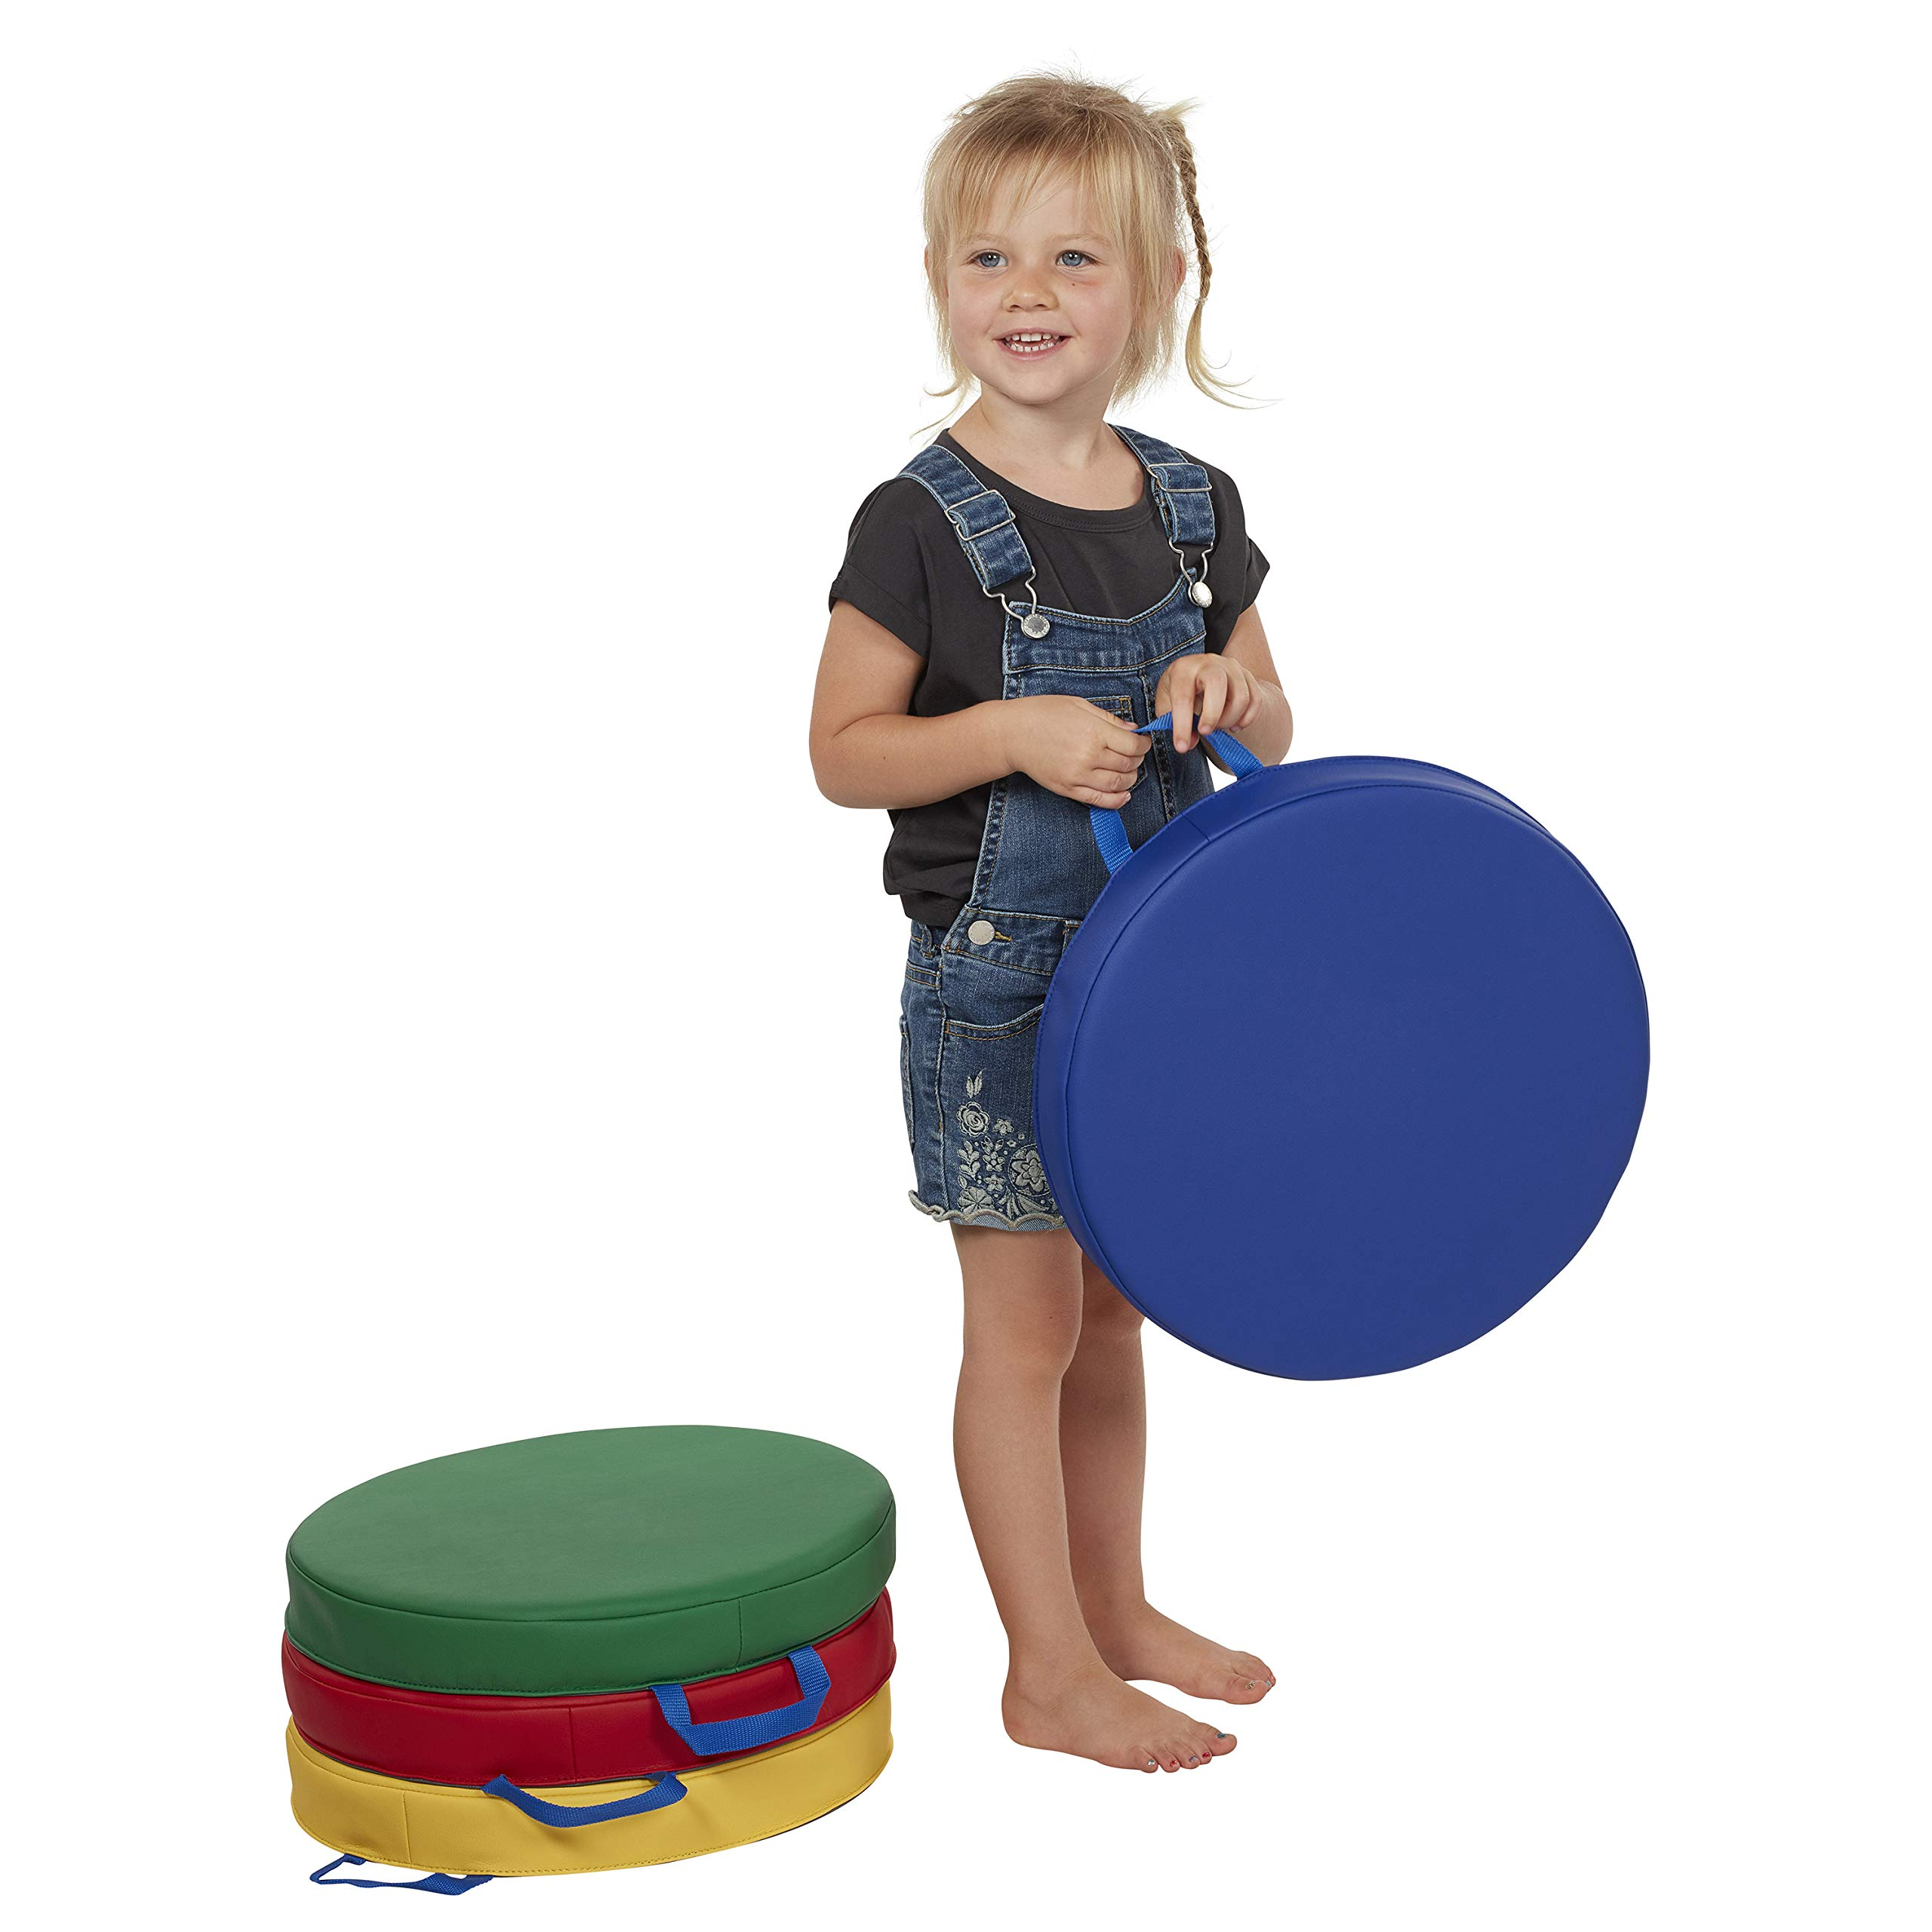 ECR4Kids SoftZone Cozy Floor Seat Cushions with Handles, 2'' Deluxe Foam, Flexible Classroom Story Time Seating for Toddlers and Kids, Round, Assorted Colors (4-Pack) by ECR4Kids